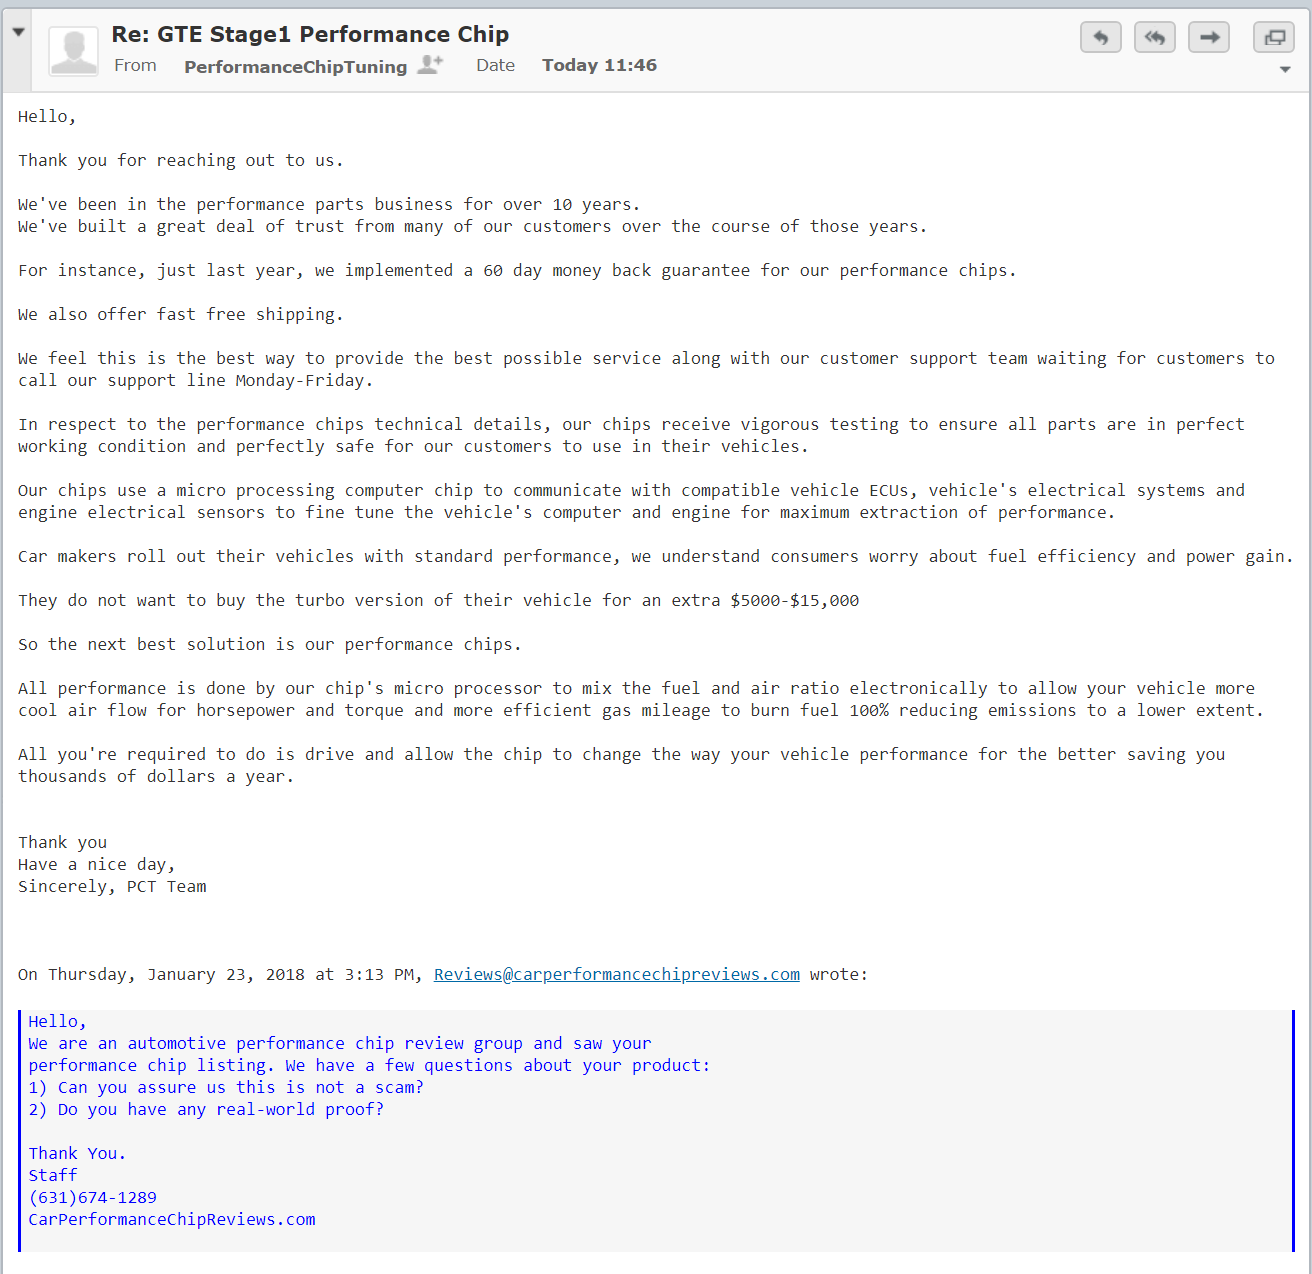 GTE-Stage1-Performance-Chip-Module-Response-Email